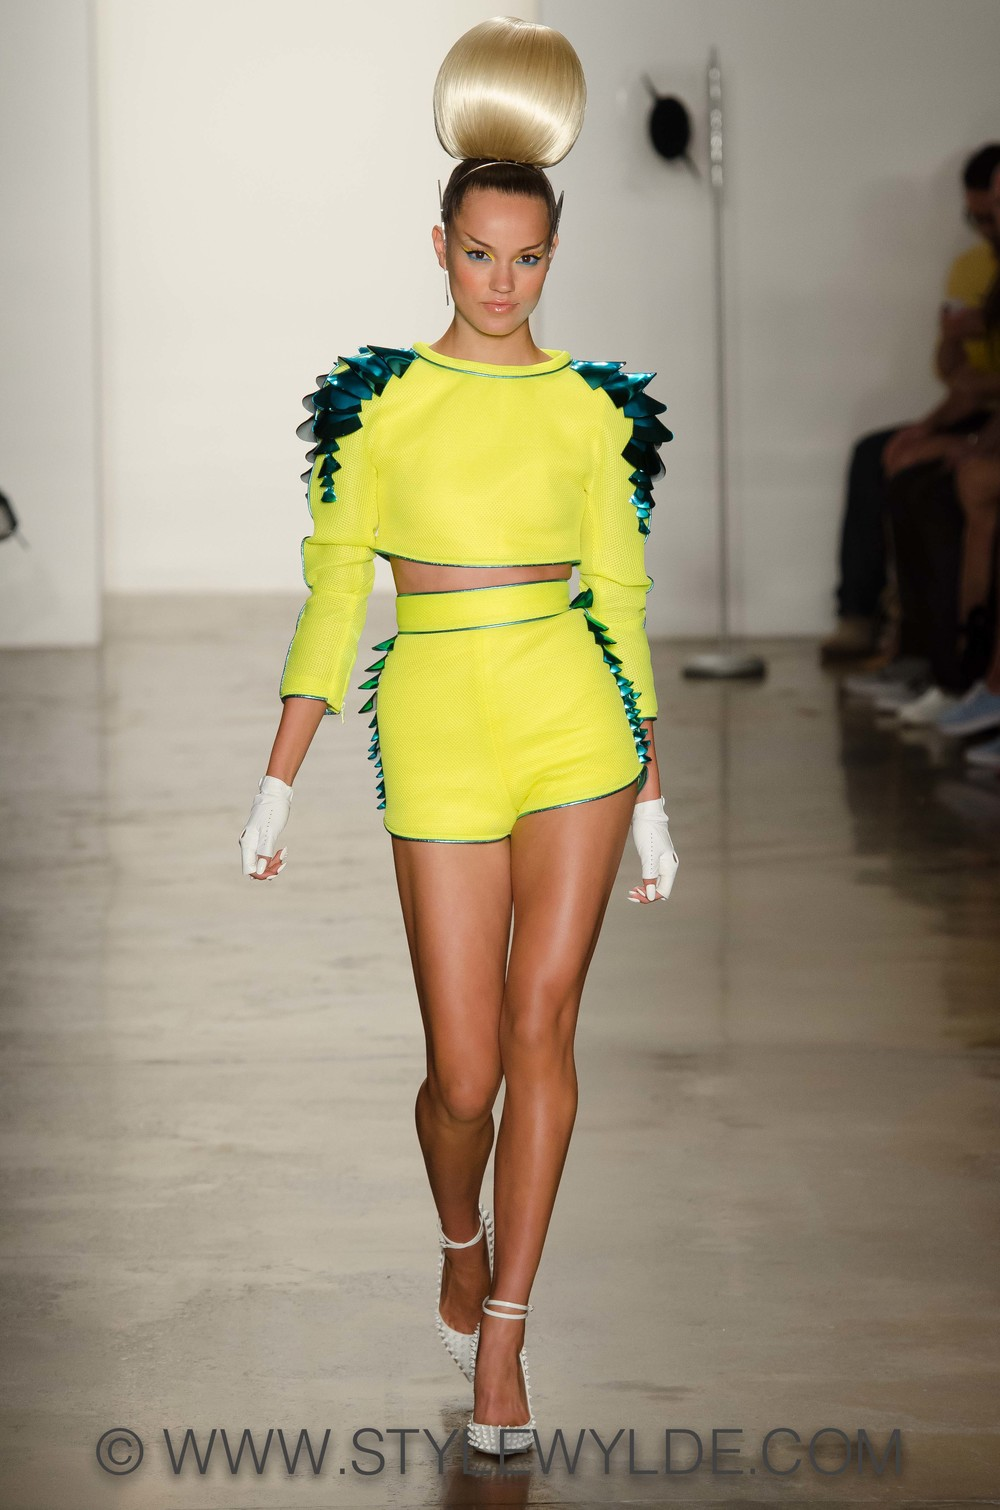 STYLEWYLDE_TheBlonds_Simon_SS2014_ 1 of 1-3.jpg